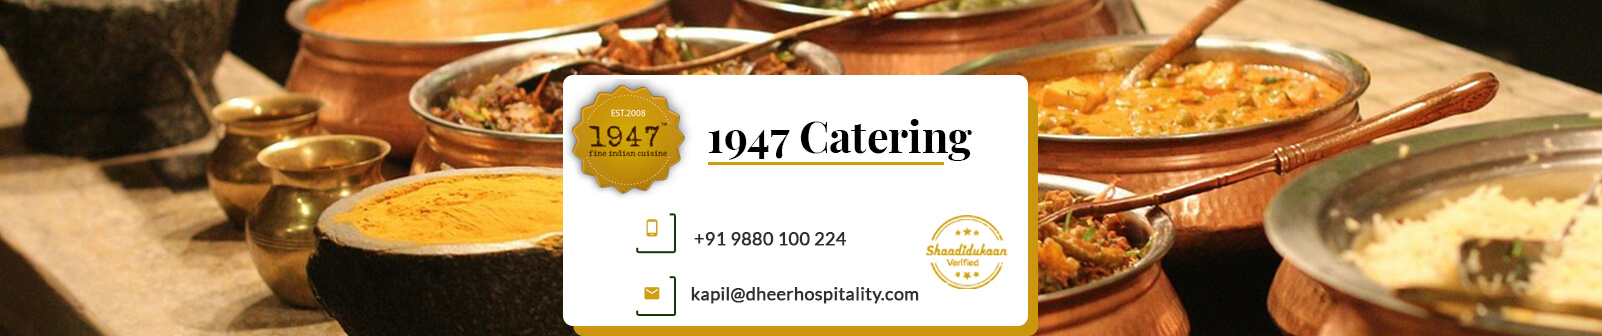 1947 Catering